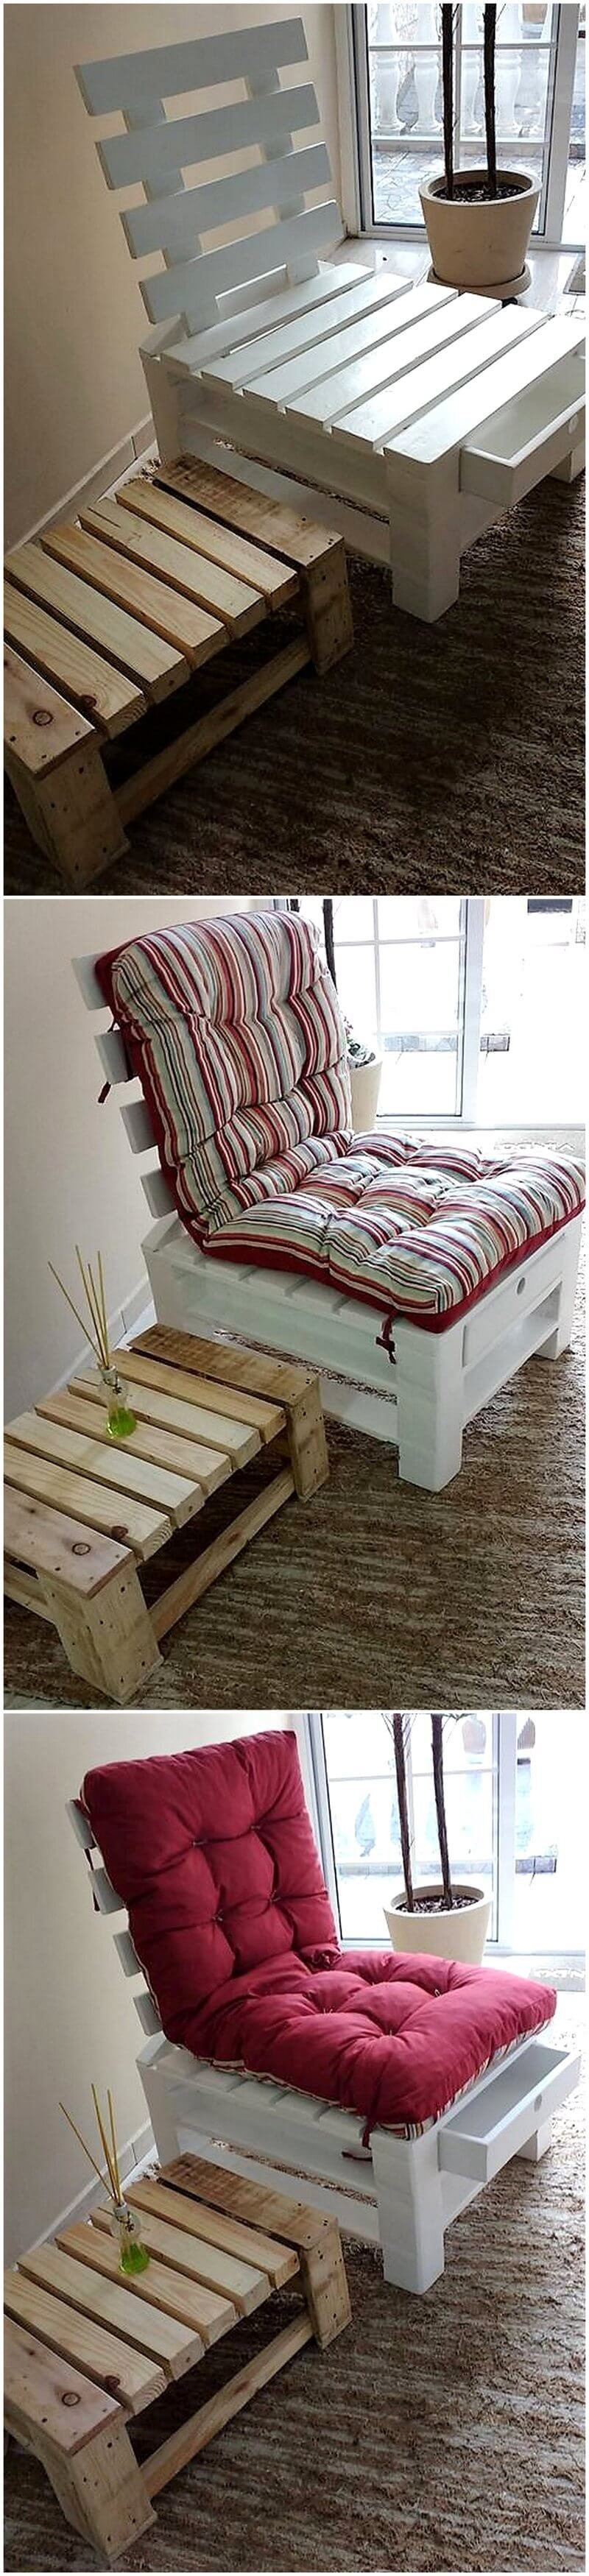 recycled pallet chair with storage drawer